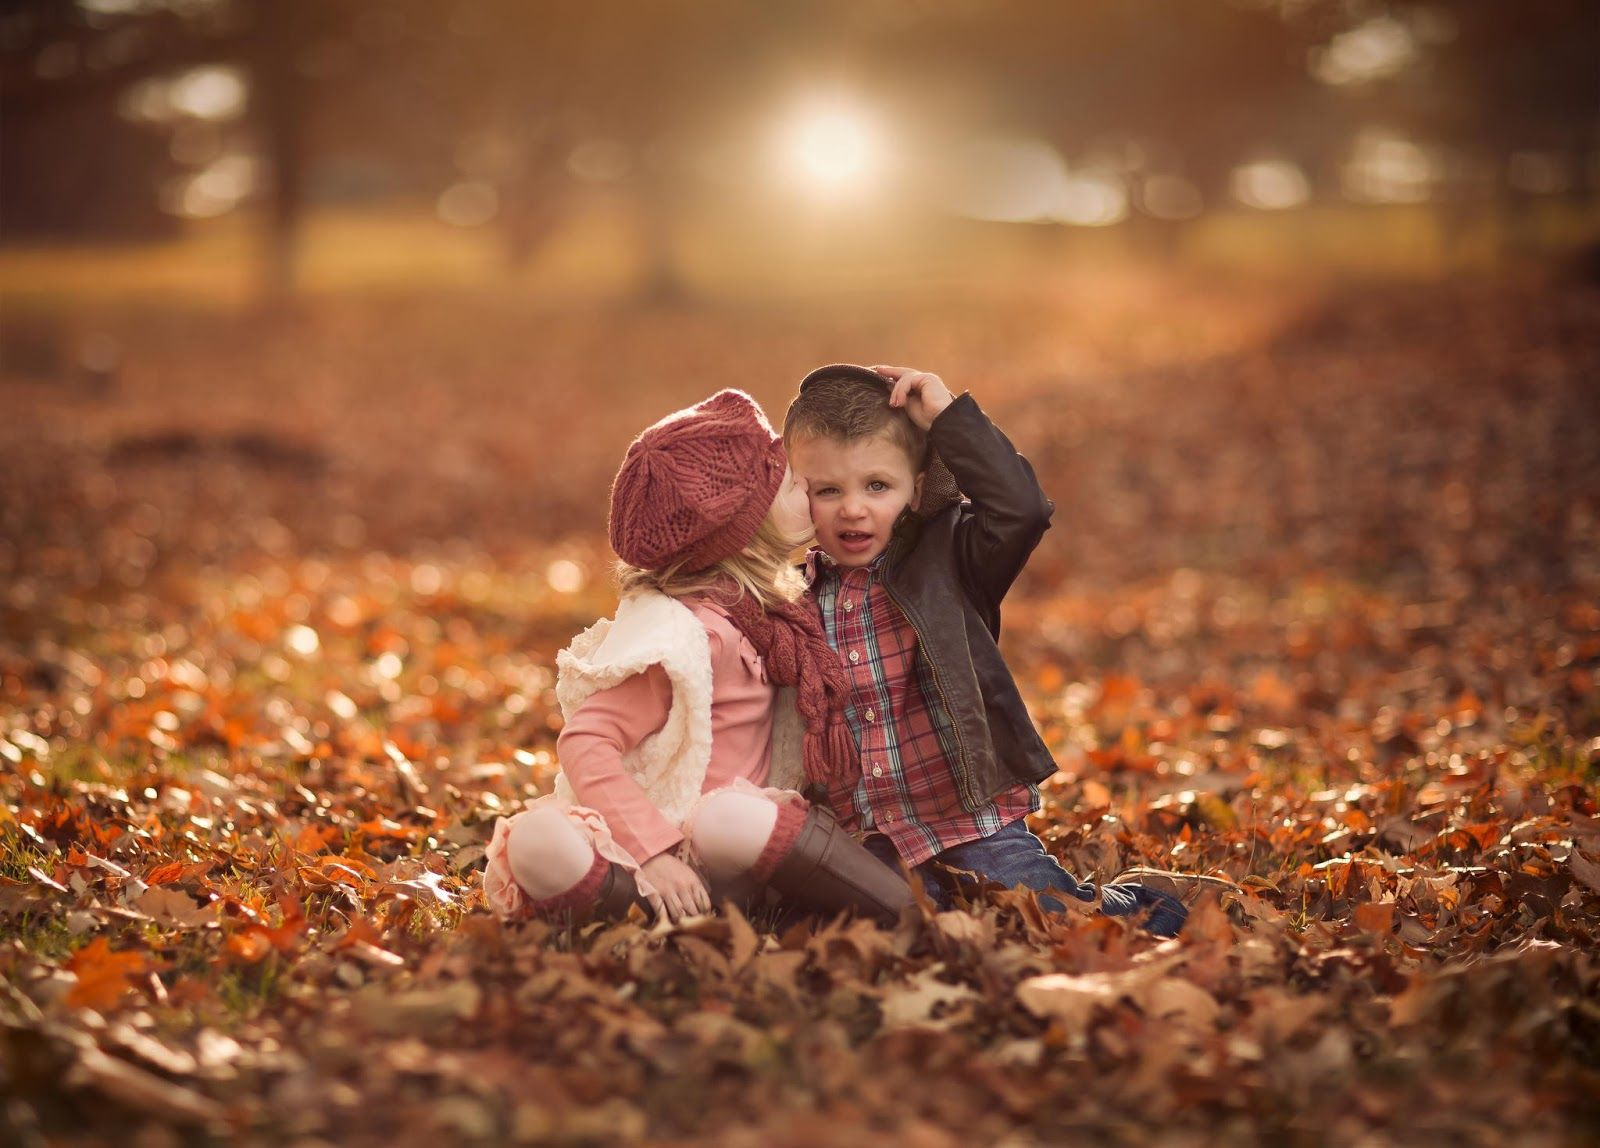 10 Cutest Children Love Kissing Images Cute Baby Couple Cute